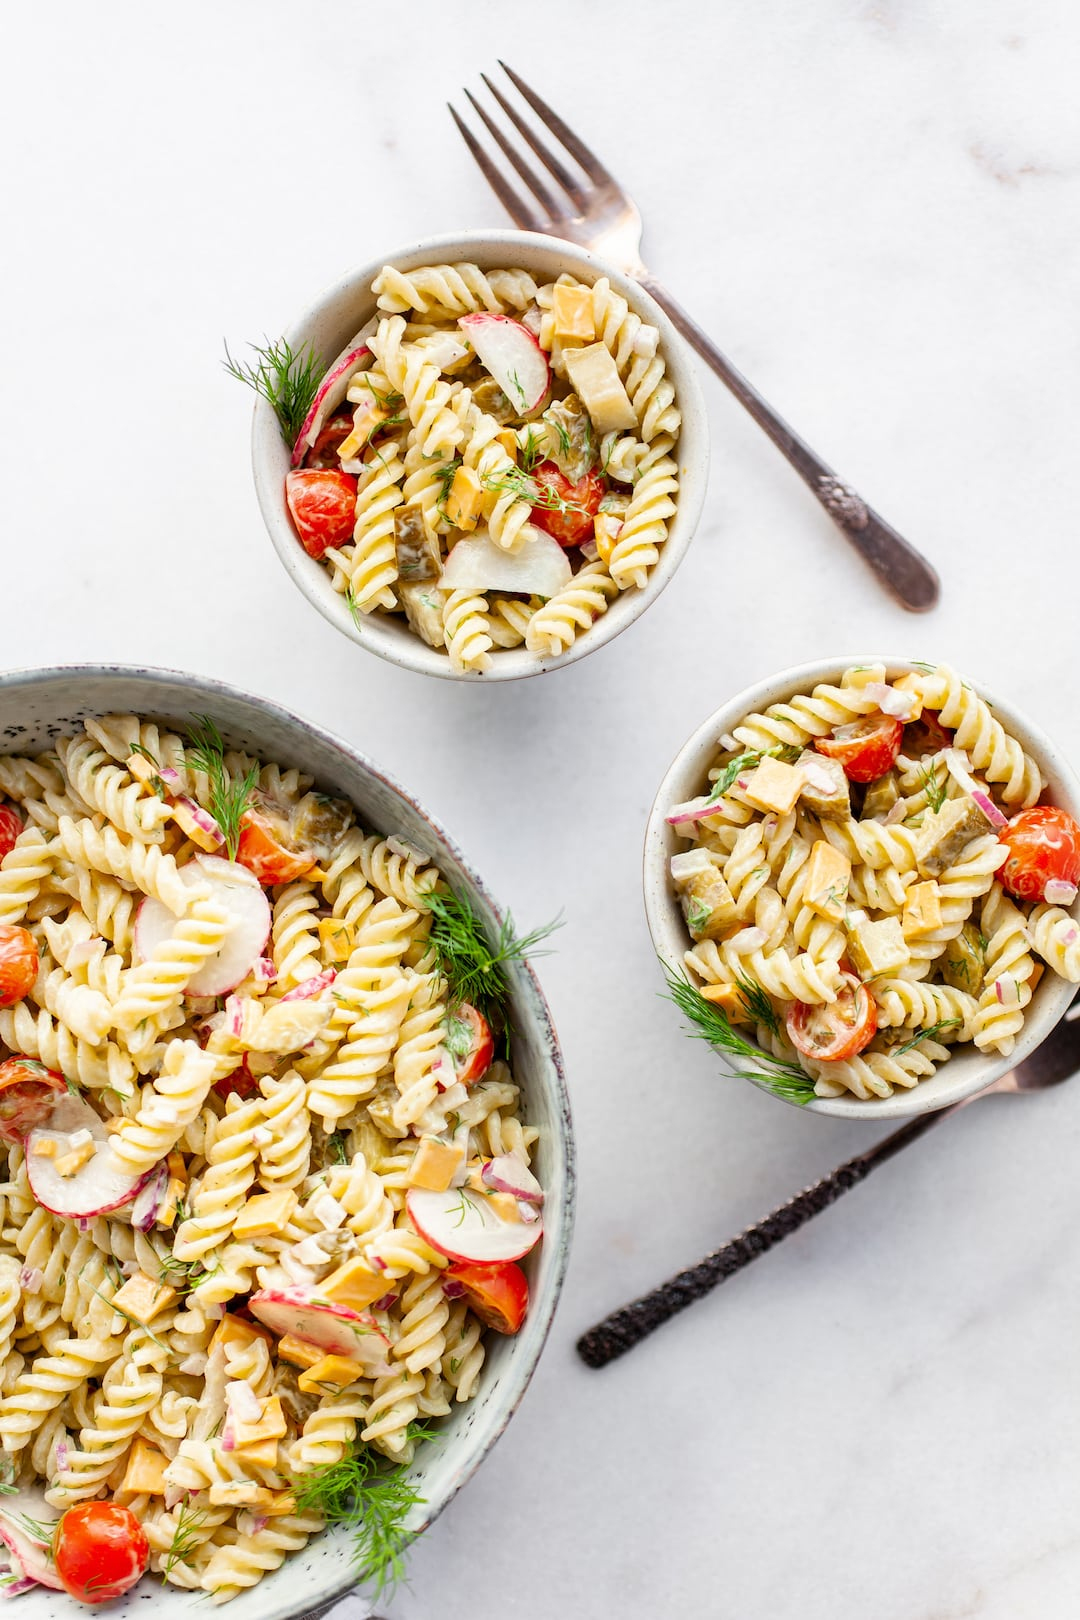 Perfect Healthy Dill Pickle Pasta Salad